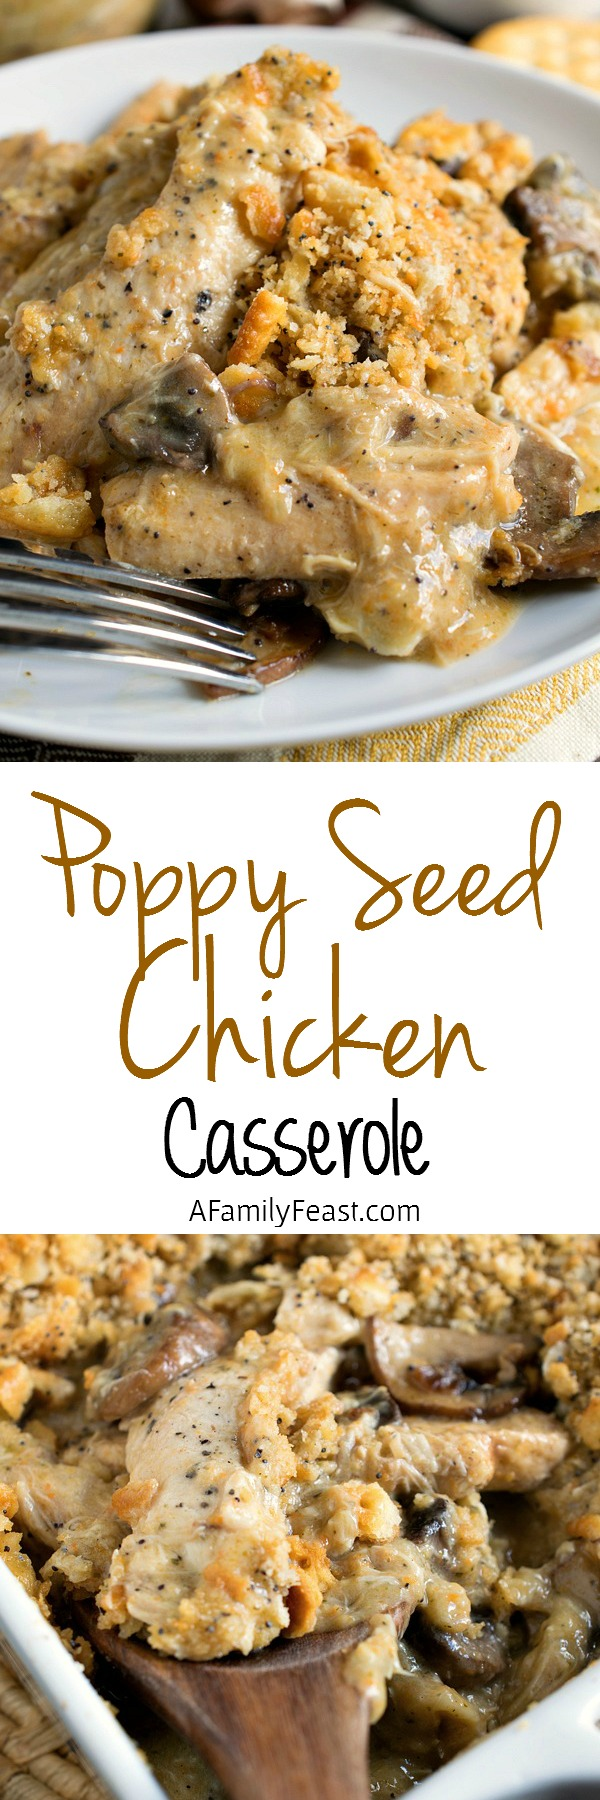 Poppy Seed Chicken - Classic comfort food made even better thanks to our homemade sauce!